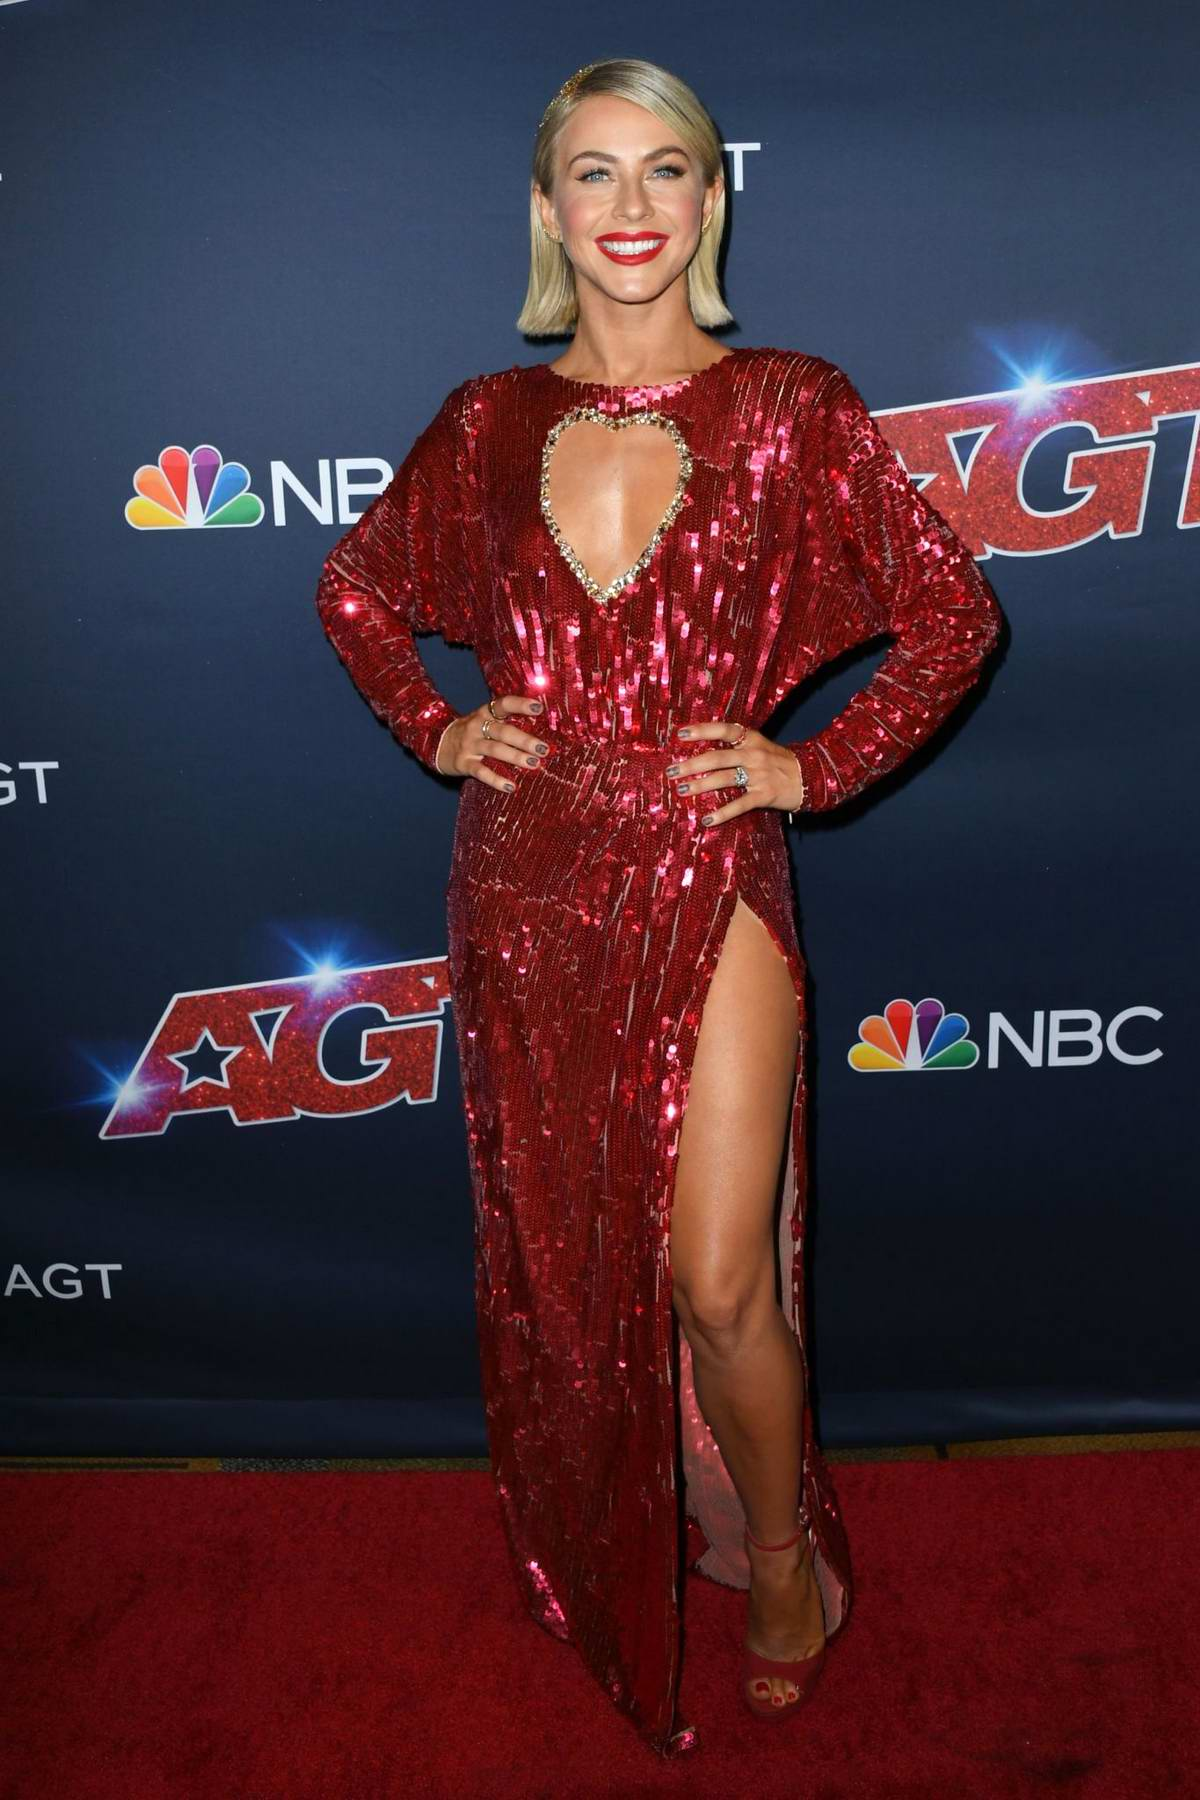 Julianne Hough attends 'America's Got Talent' Season 14 Live Show at Dolby Theatre in Hollywood, California